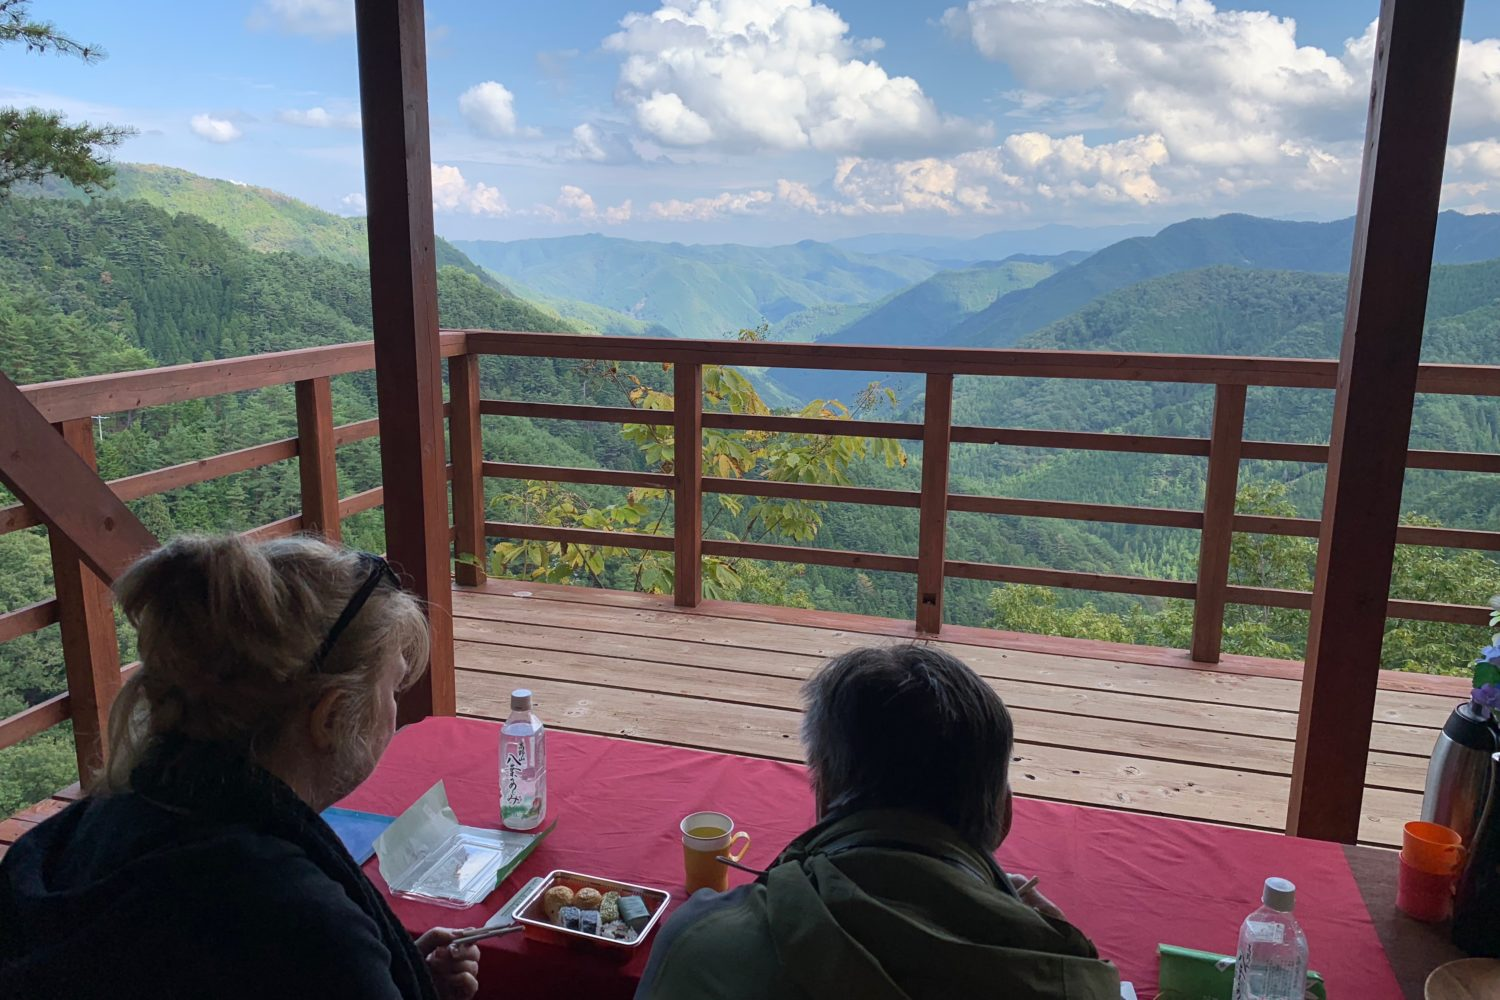 Lunch with superb view! Hiking ancient pilgrimage trail